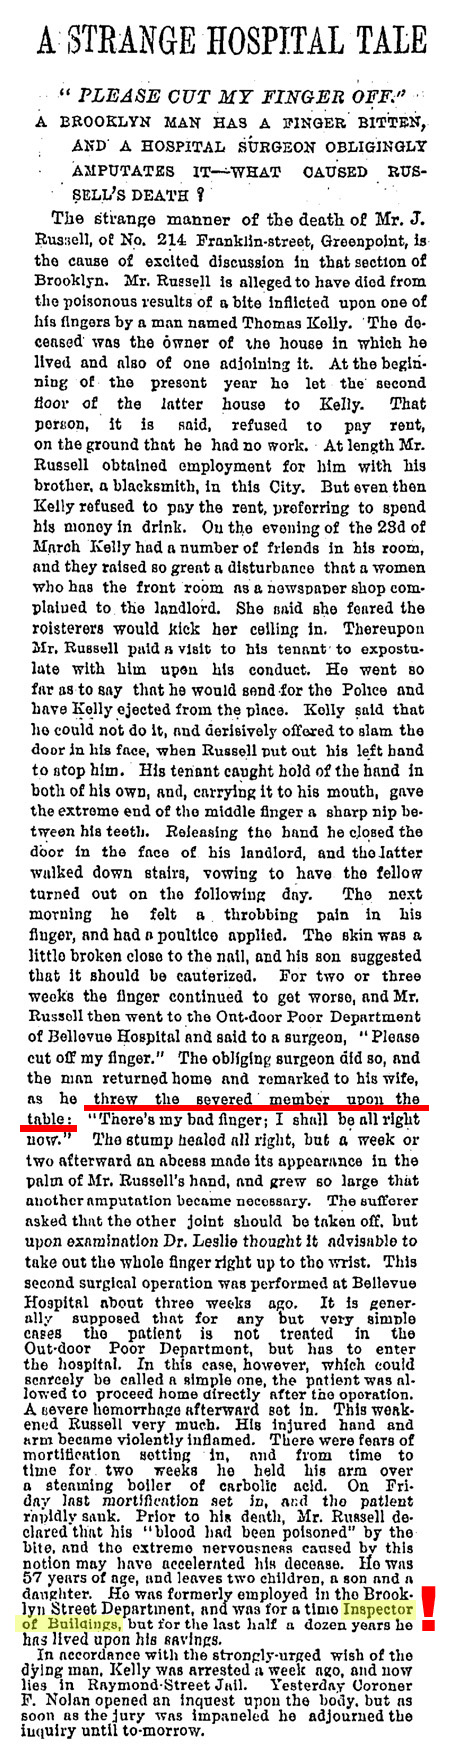 8/18/1878 NYTimes